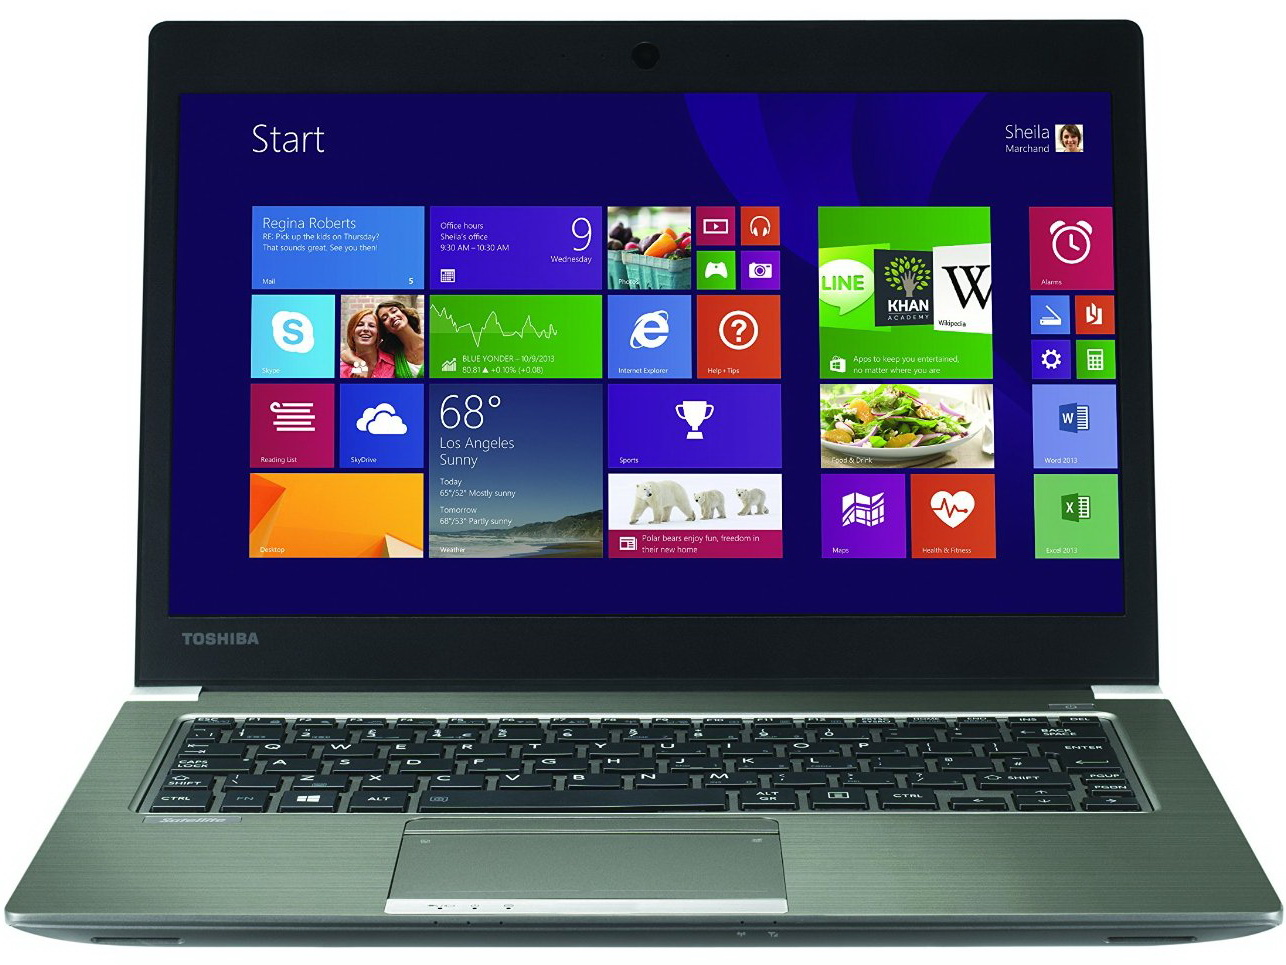 Toshiba Portege Z940-B Intel Wireless Display Drivers for Windows 10